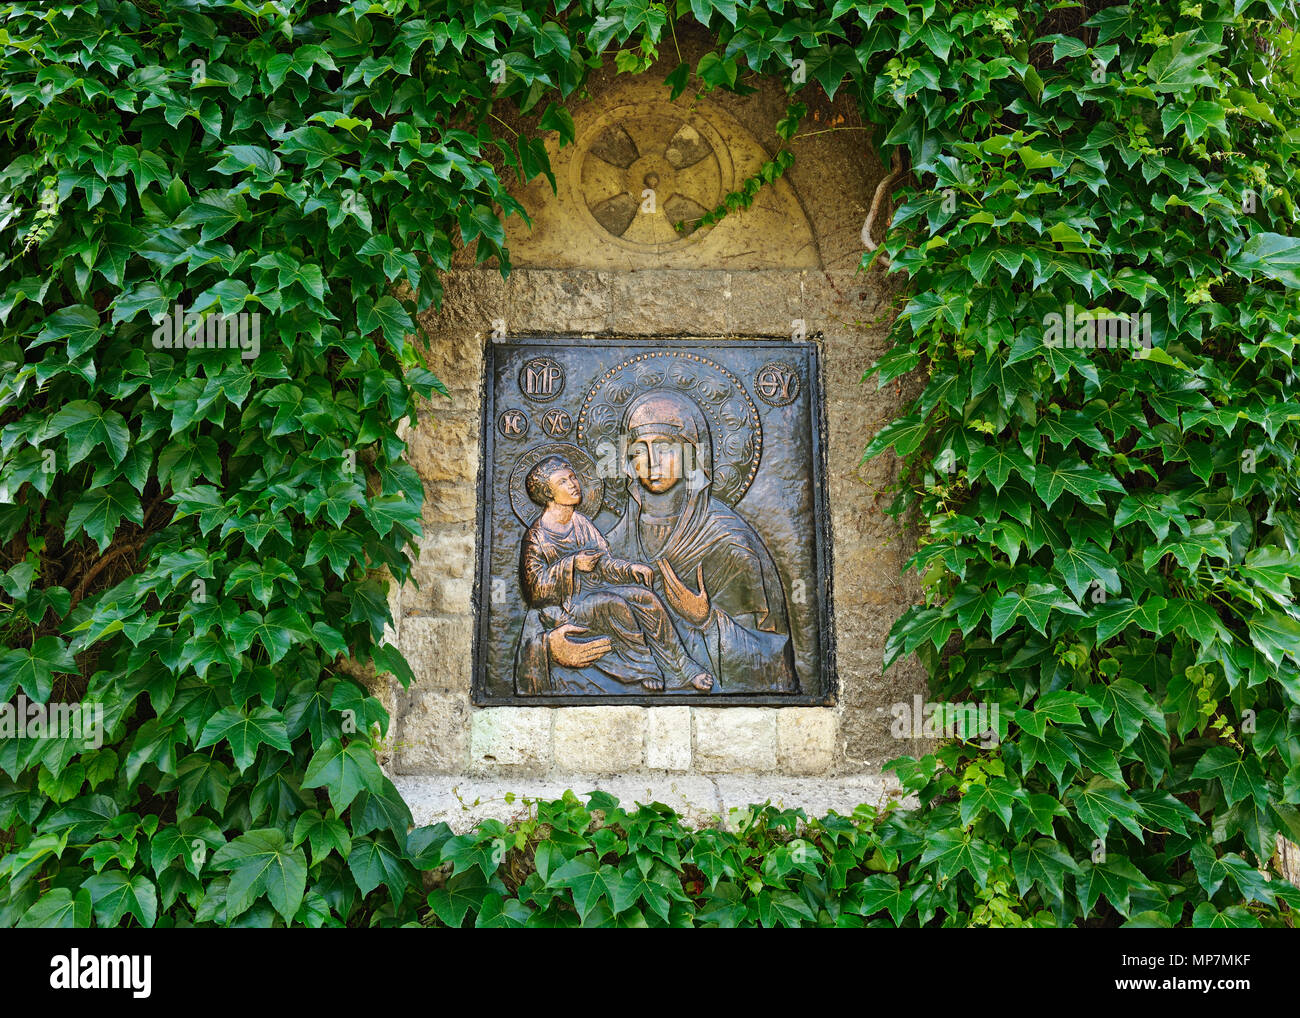 Holy Mother of God Depicted on the Exterior Wall of the Ruzica Church, Belgrade Fortress, Kalemegdan, Belgrade, Serbia - Stock Image